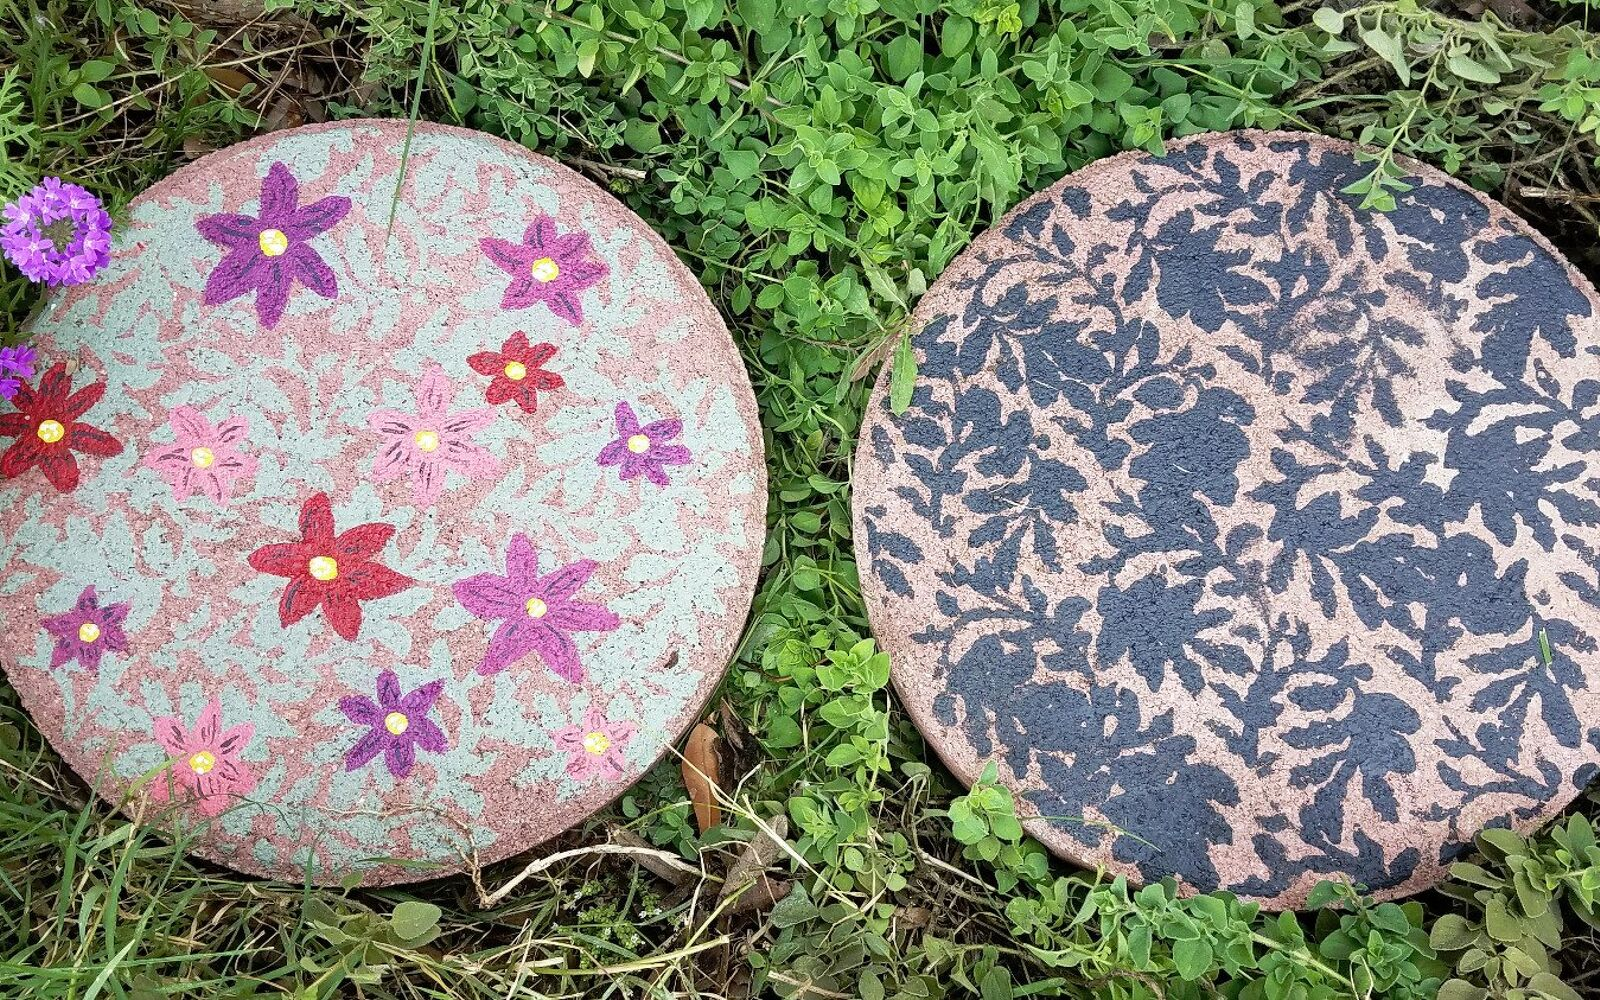 s upgrade your backyard with these 30 clever ideas, Stencil pave stones for garden decor